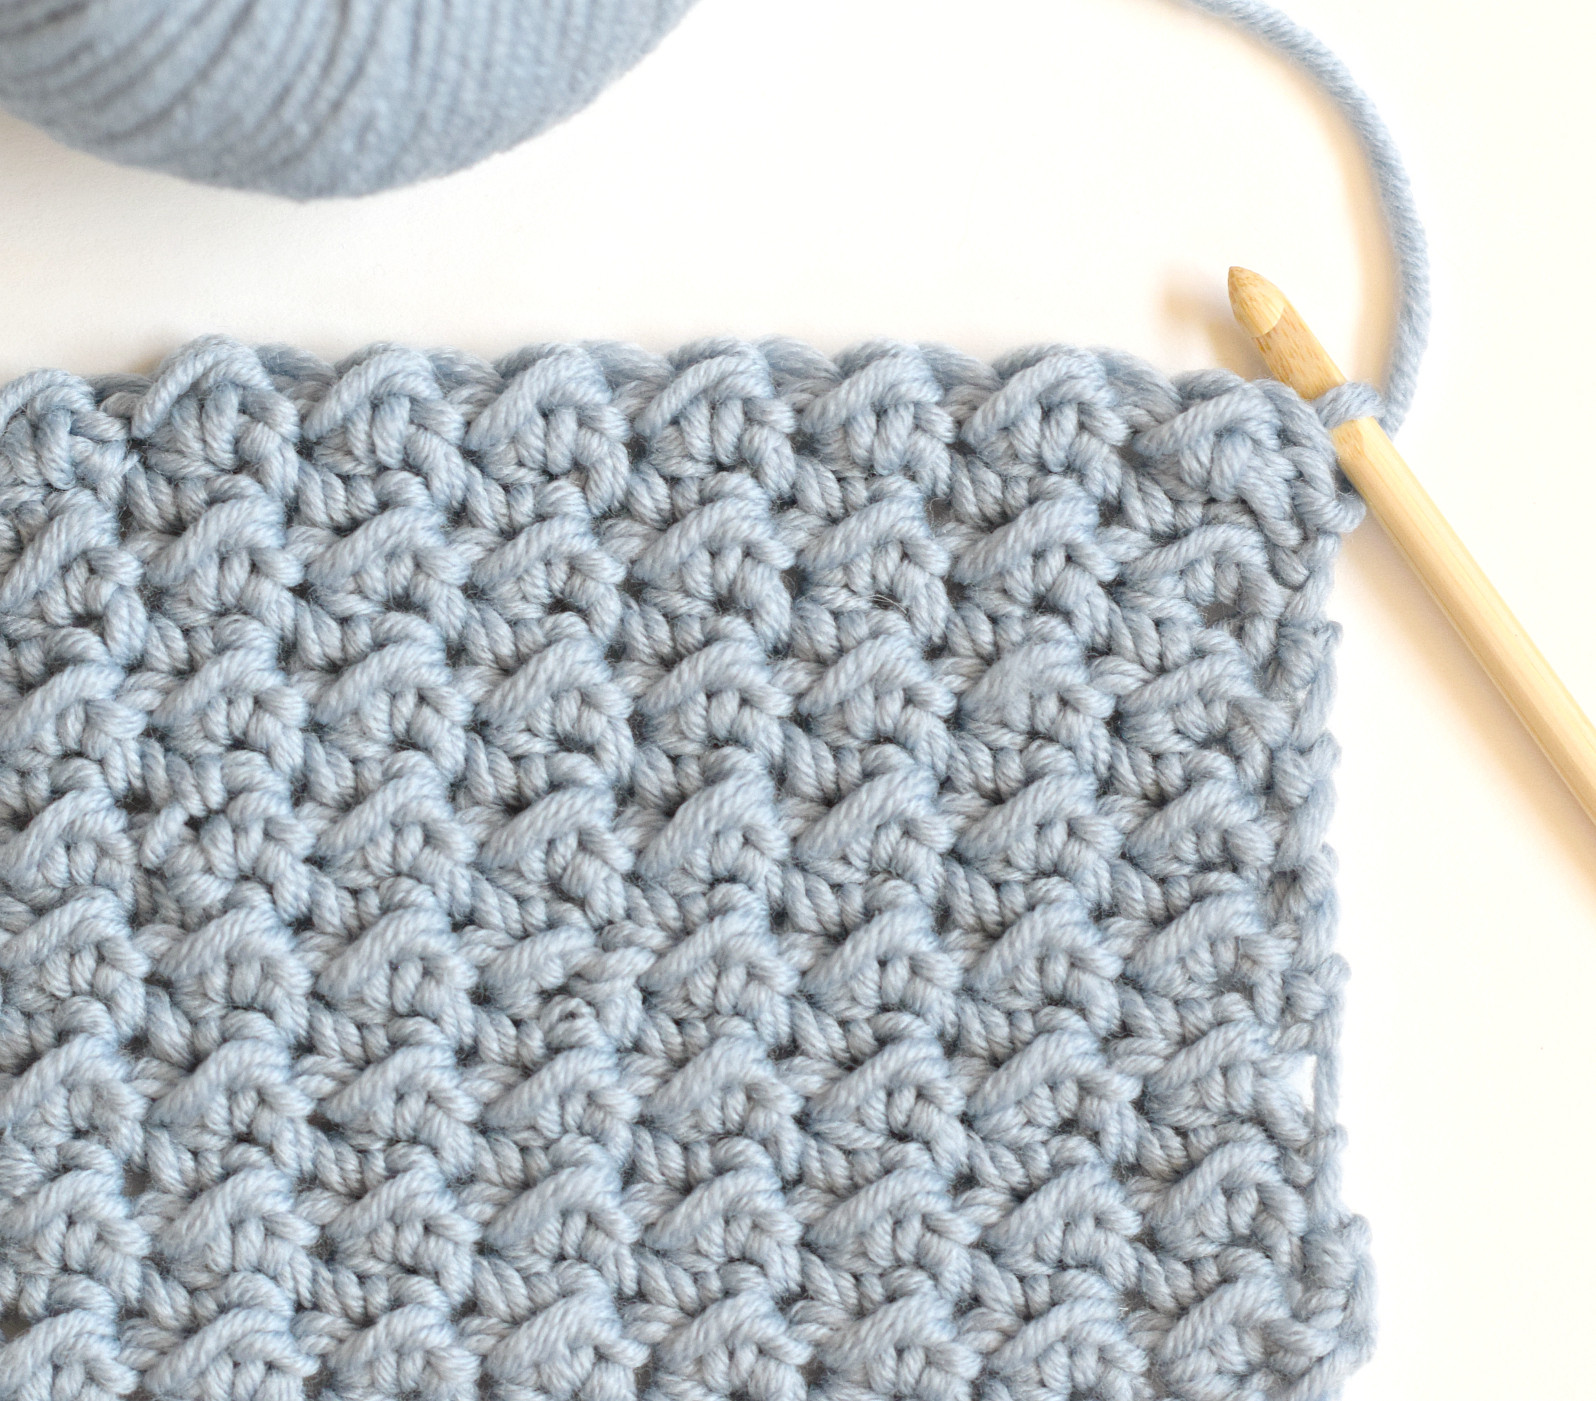 Unique How to Crochet the even Moss Stitch – Mama In A Stitch List Of Crochet Stitches Of Amazing 49 Pics List Of Crochet Stitches